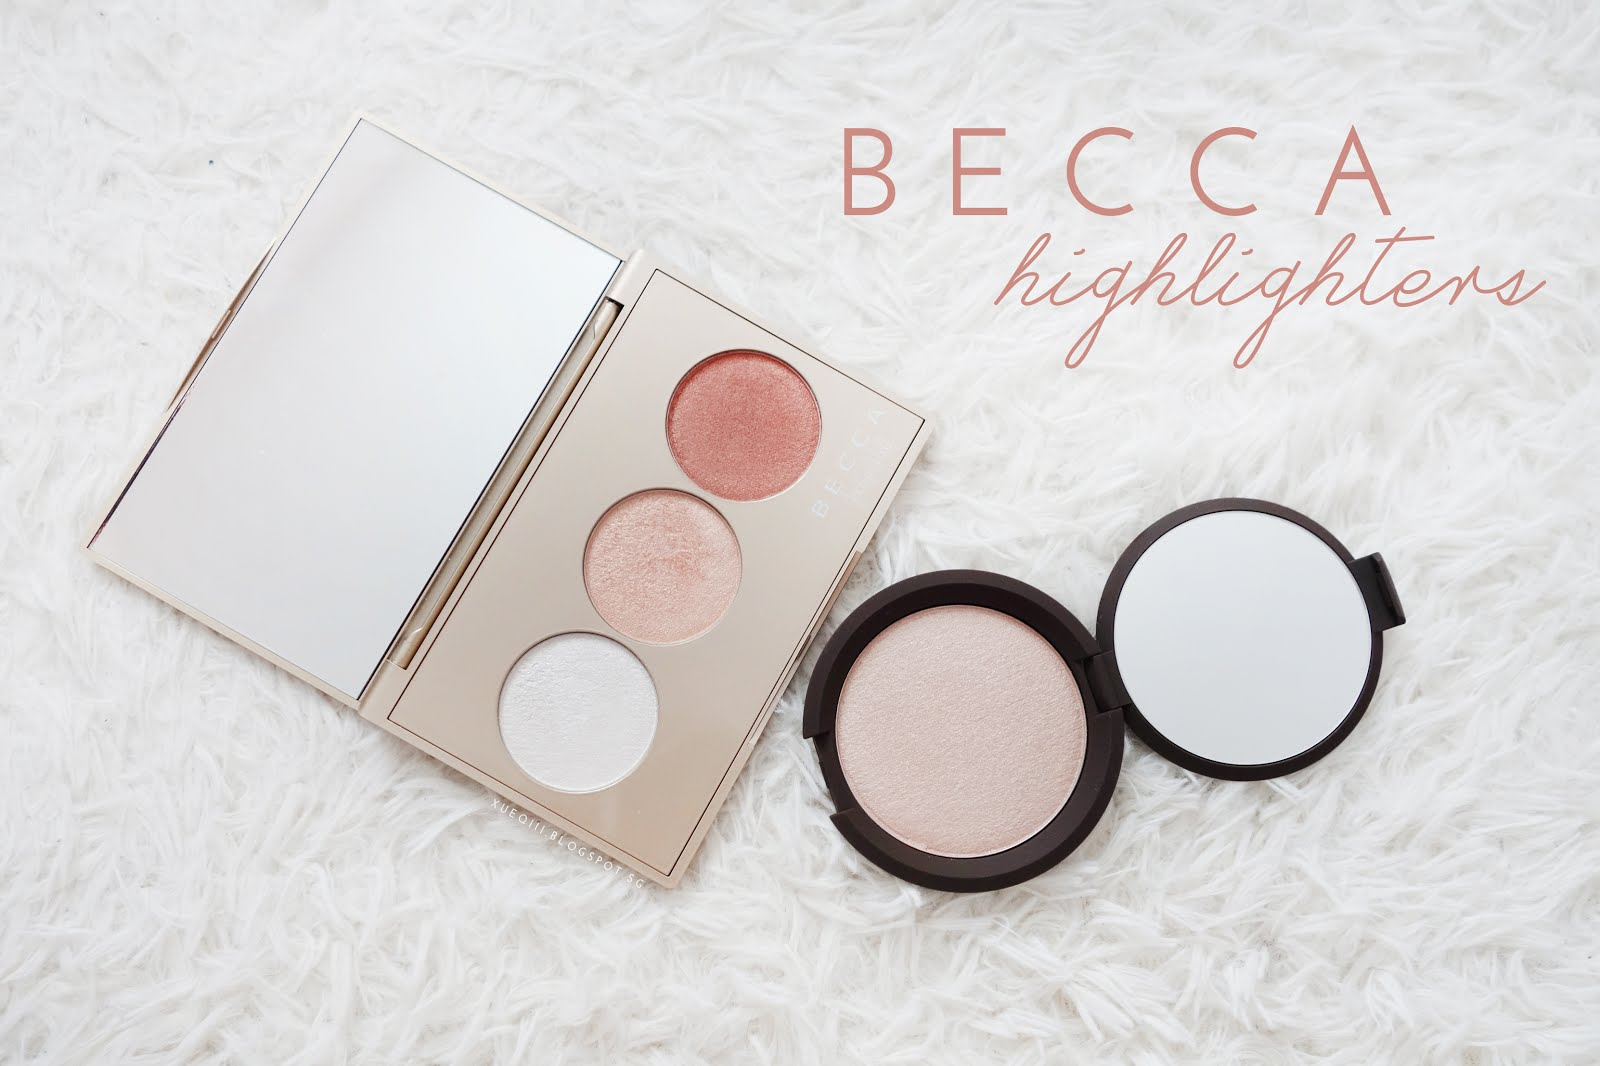 Jaclyn Hill x Becca Holiday Palette in Champagne Glow